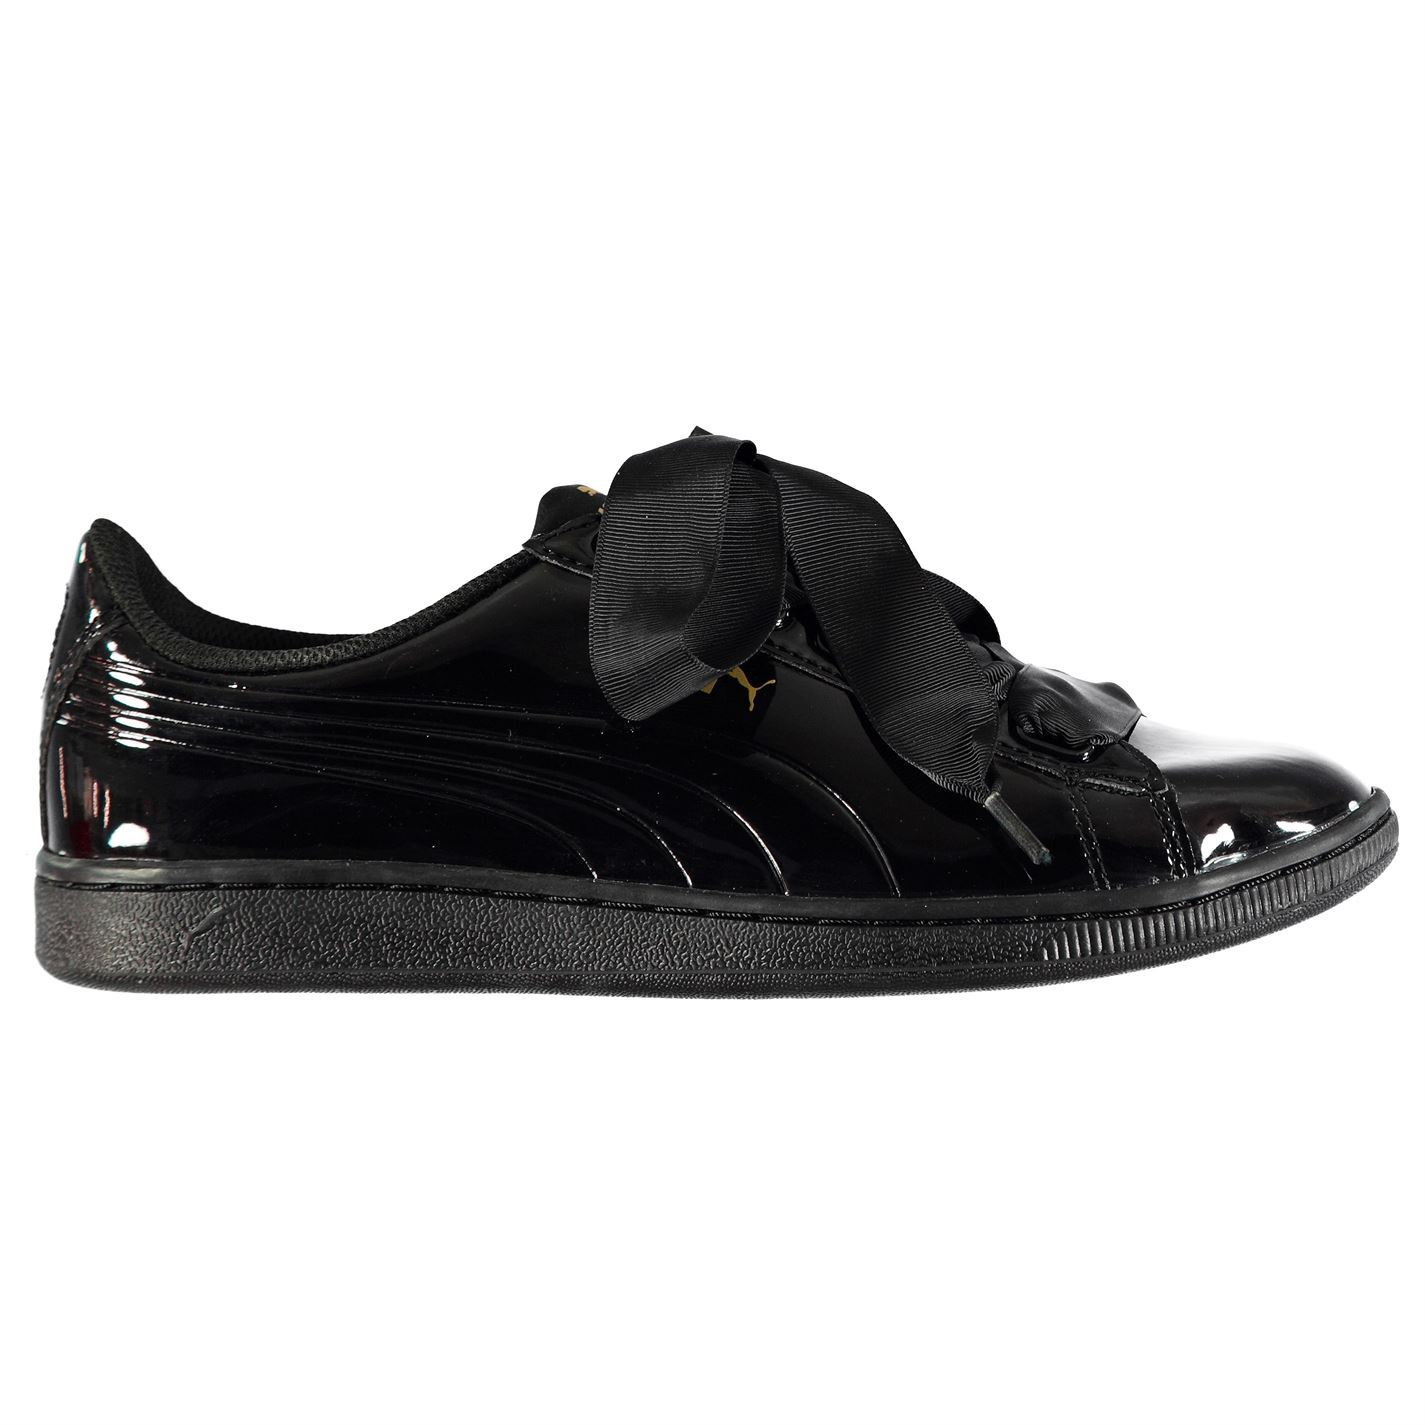 baf6e0efc03d30 ... Puma Vikky Ribbon Trainers Womens Black Sports Trainers Sneakers ...